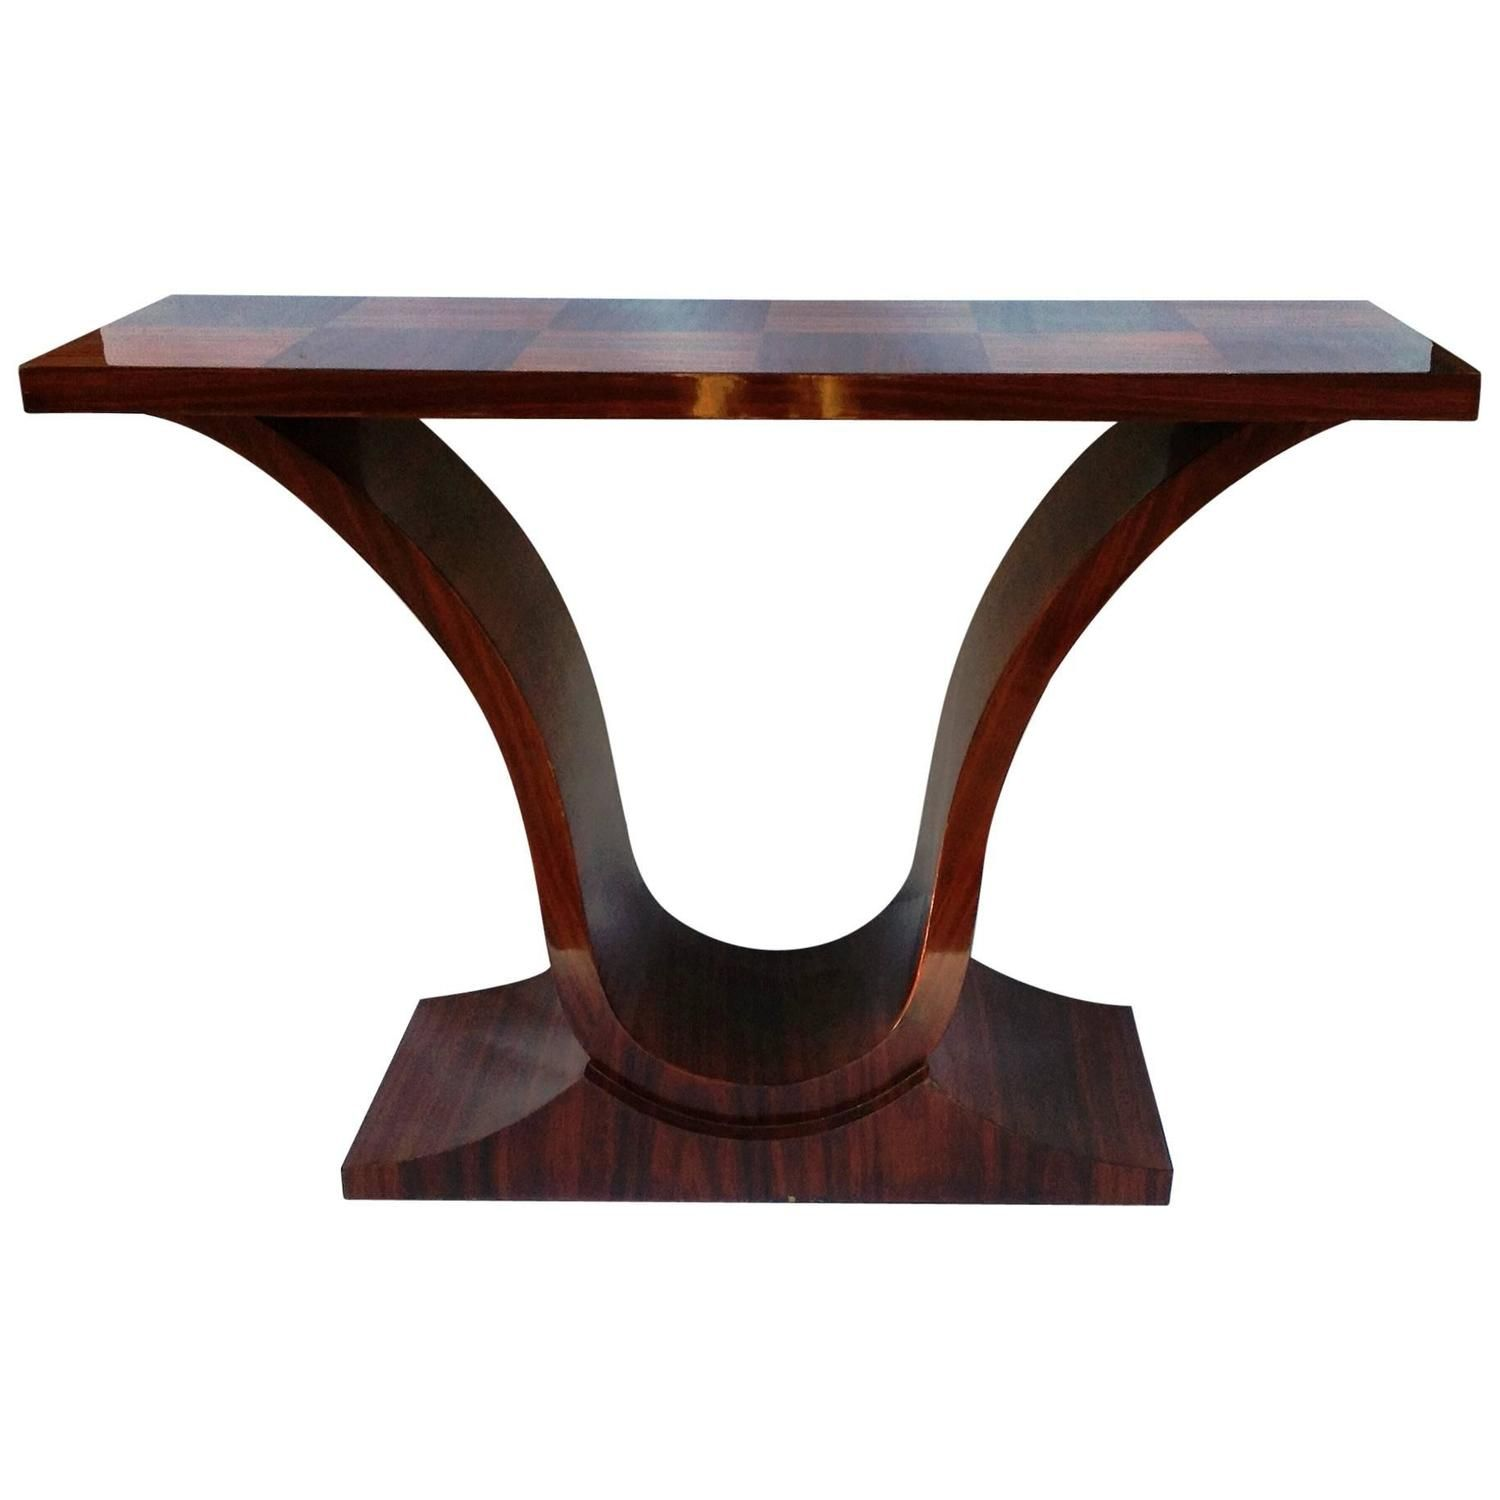 Elegant Art Deco Style Mahogany Veneer Console Table, Late 20th ...